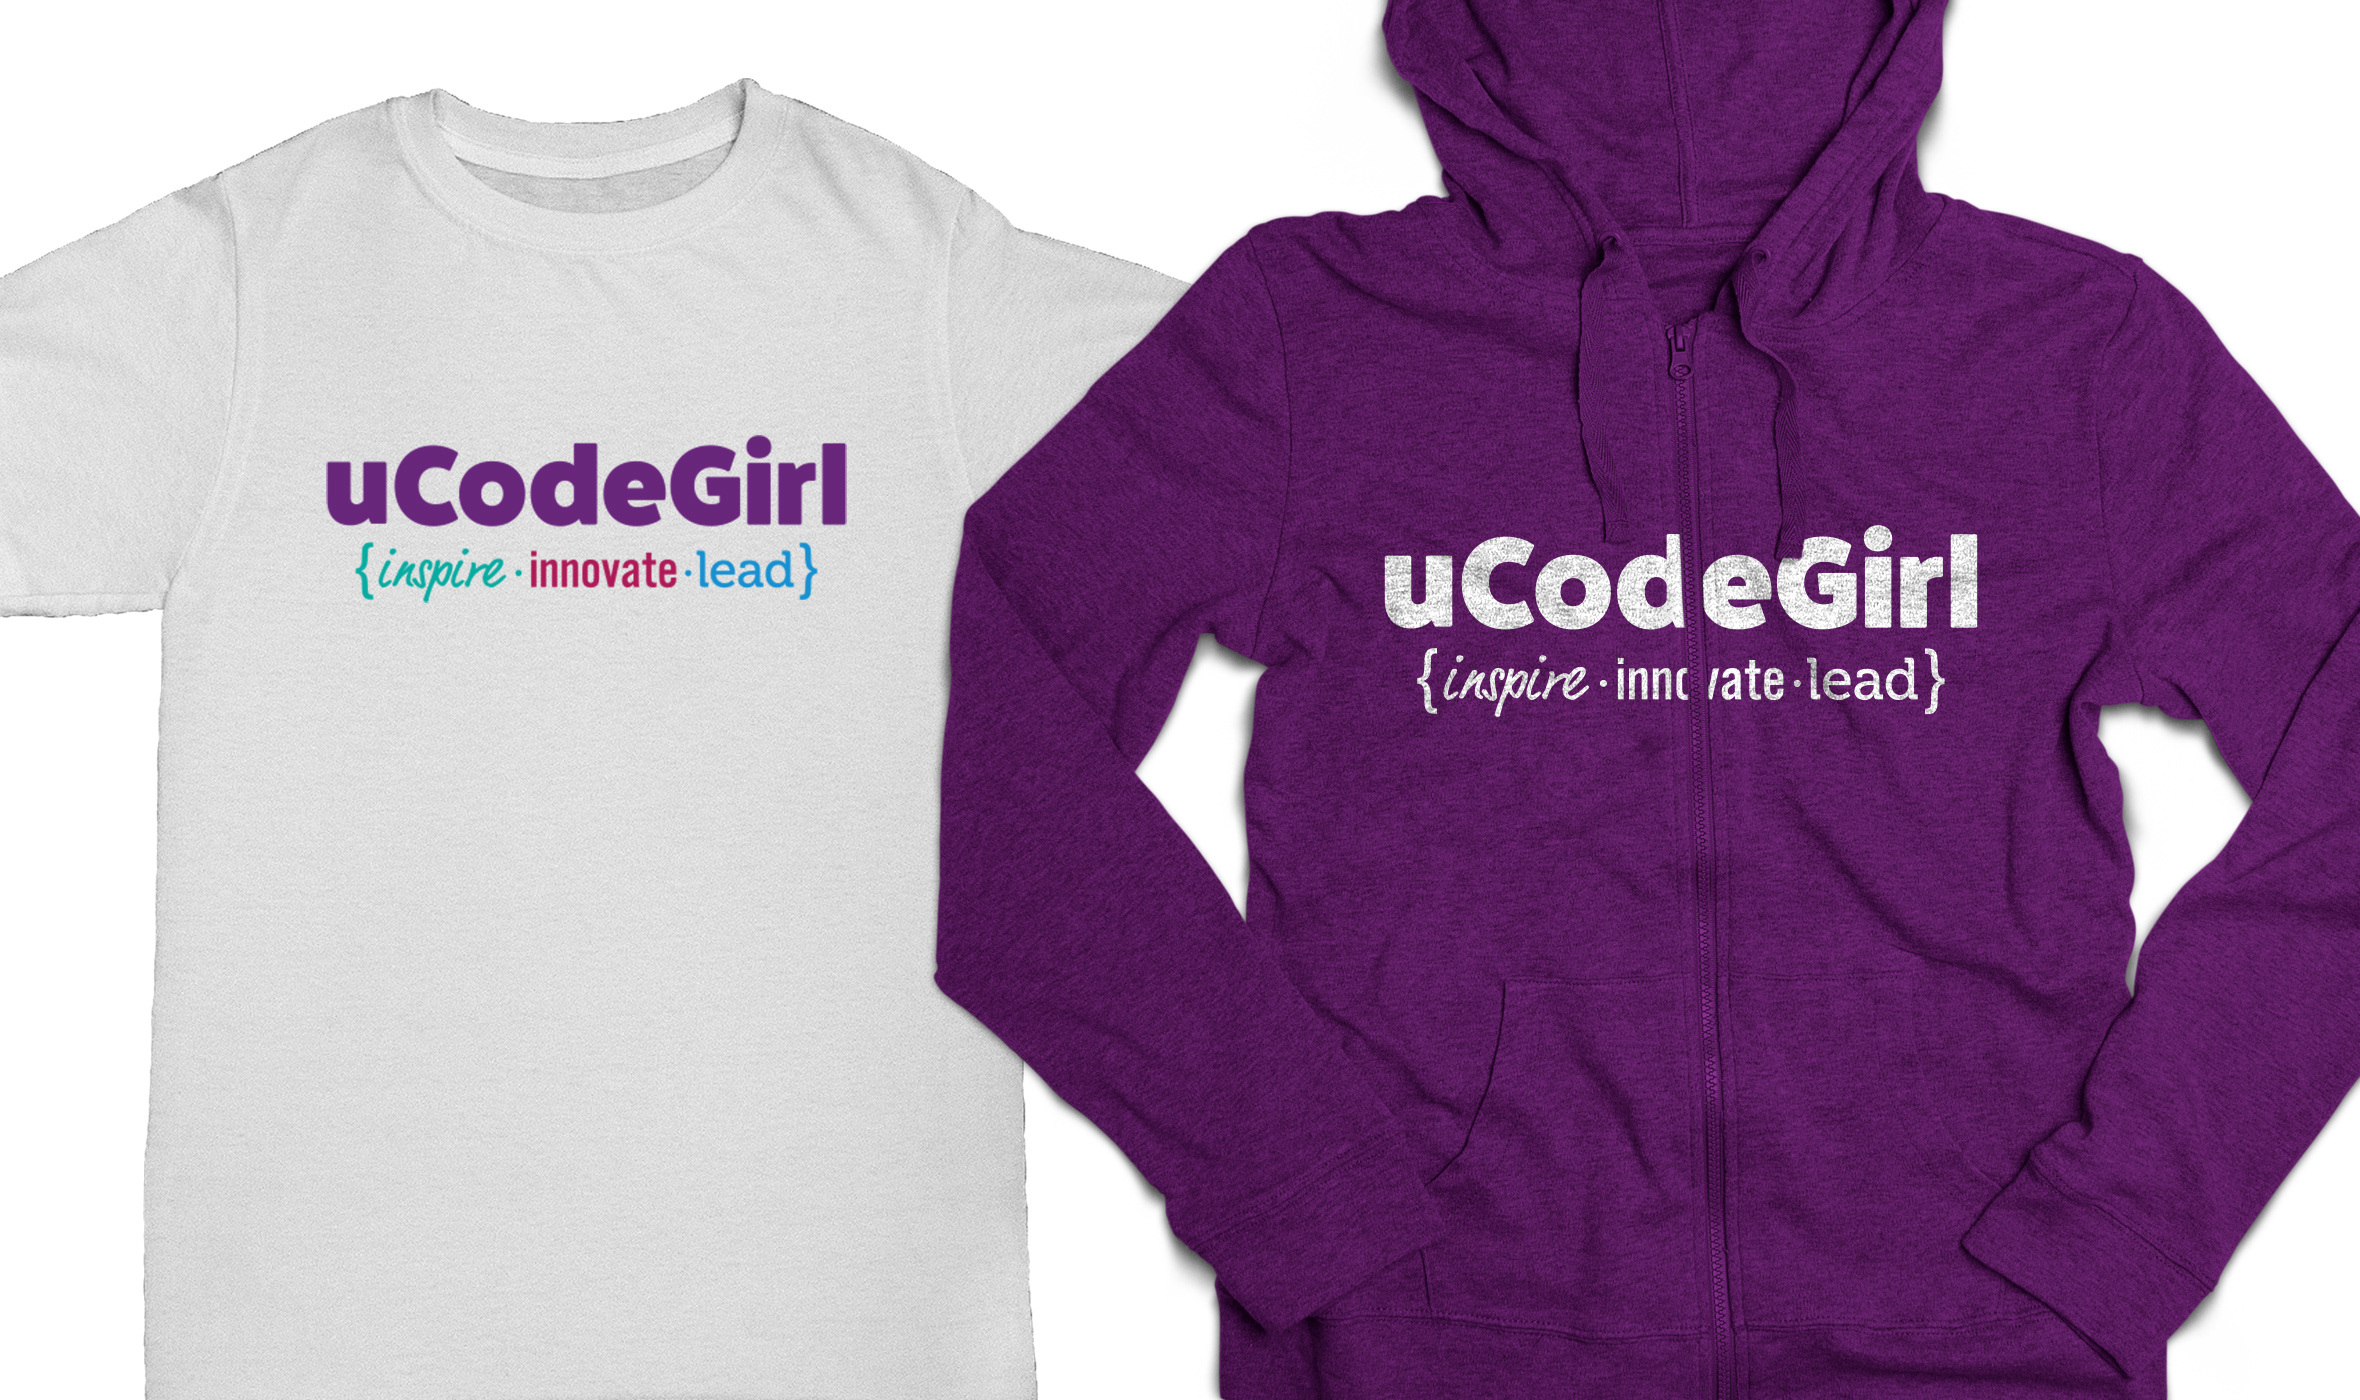 uCodeGirl_Apparel